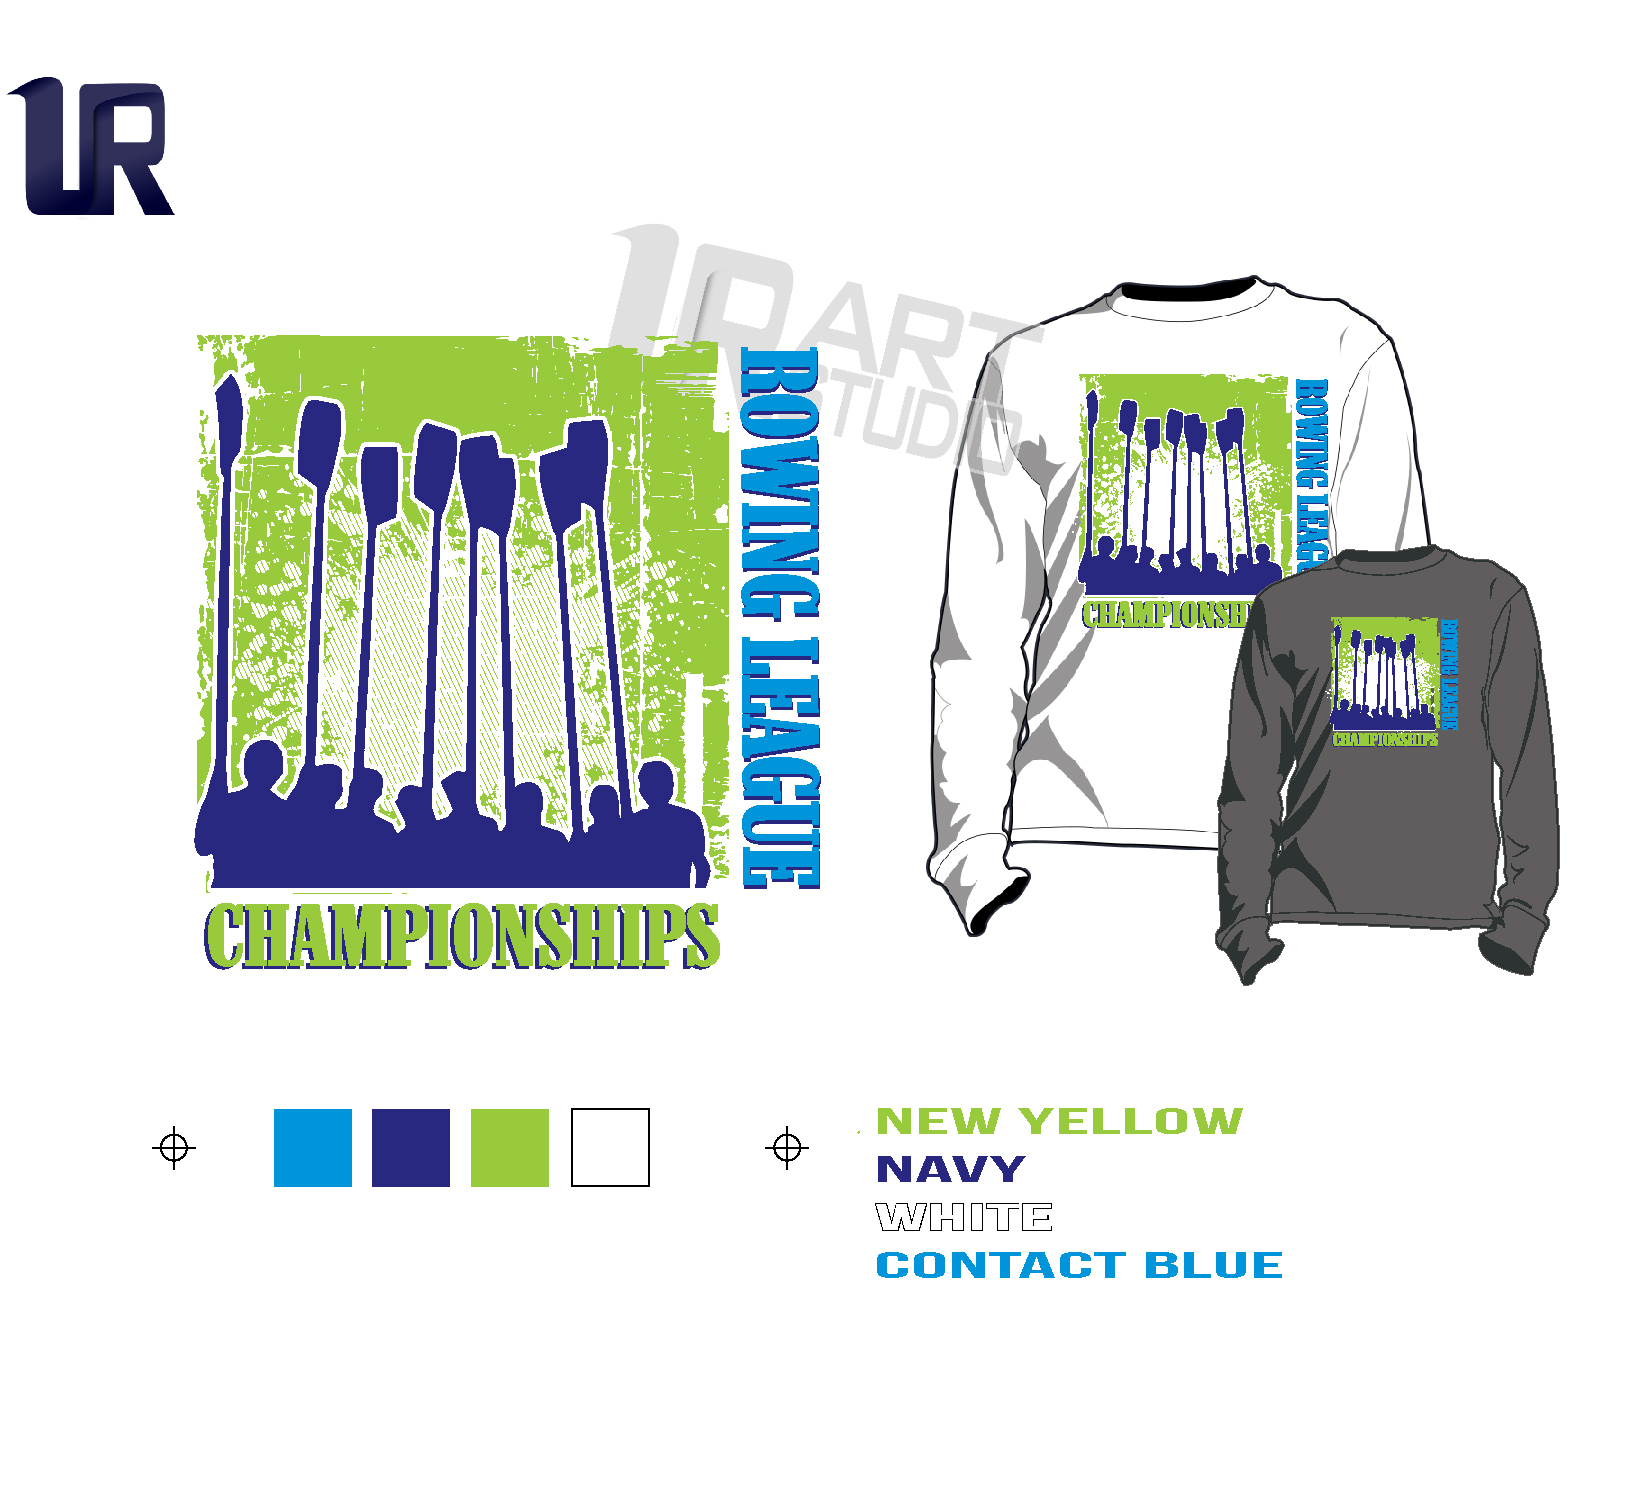 PRINT 2018 SOCCER INVITIATIONAL TOURNAMENT Tshirt vector design separated 4 color